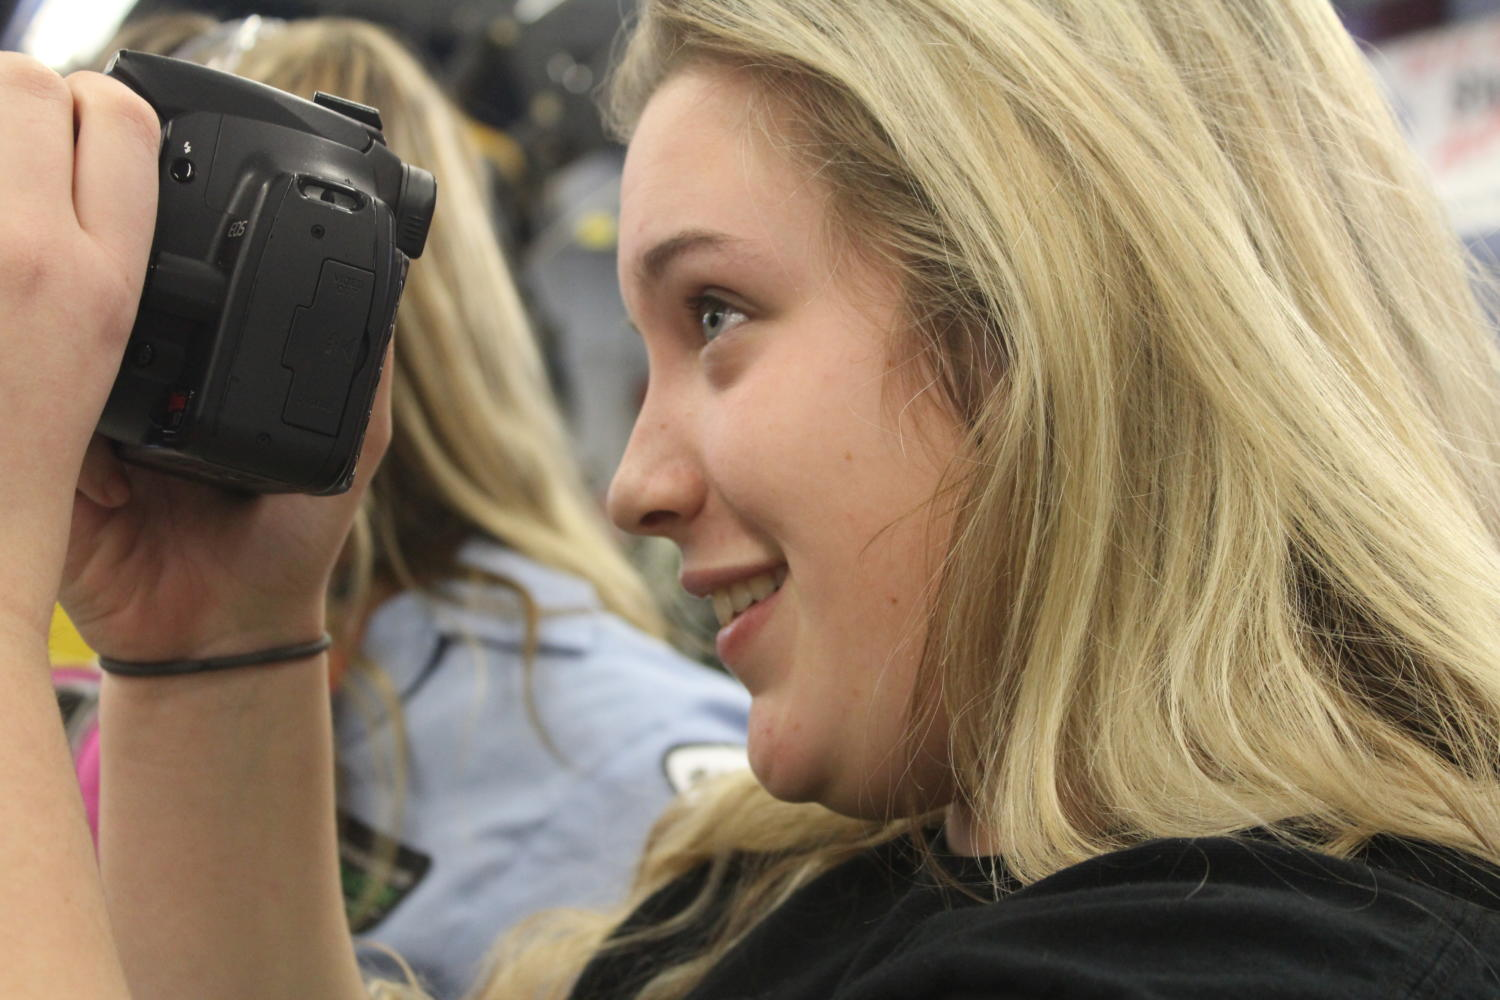 High school student Hailey Hasenyager focuses her camera. She is on her school's publication staff.